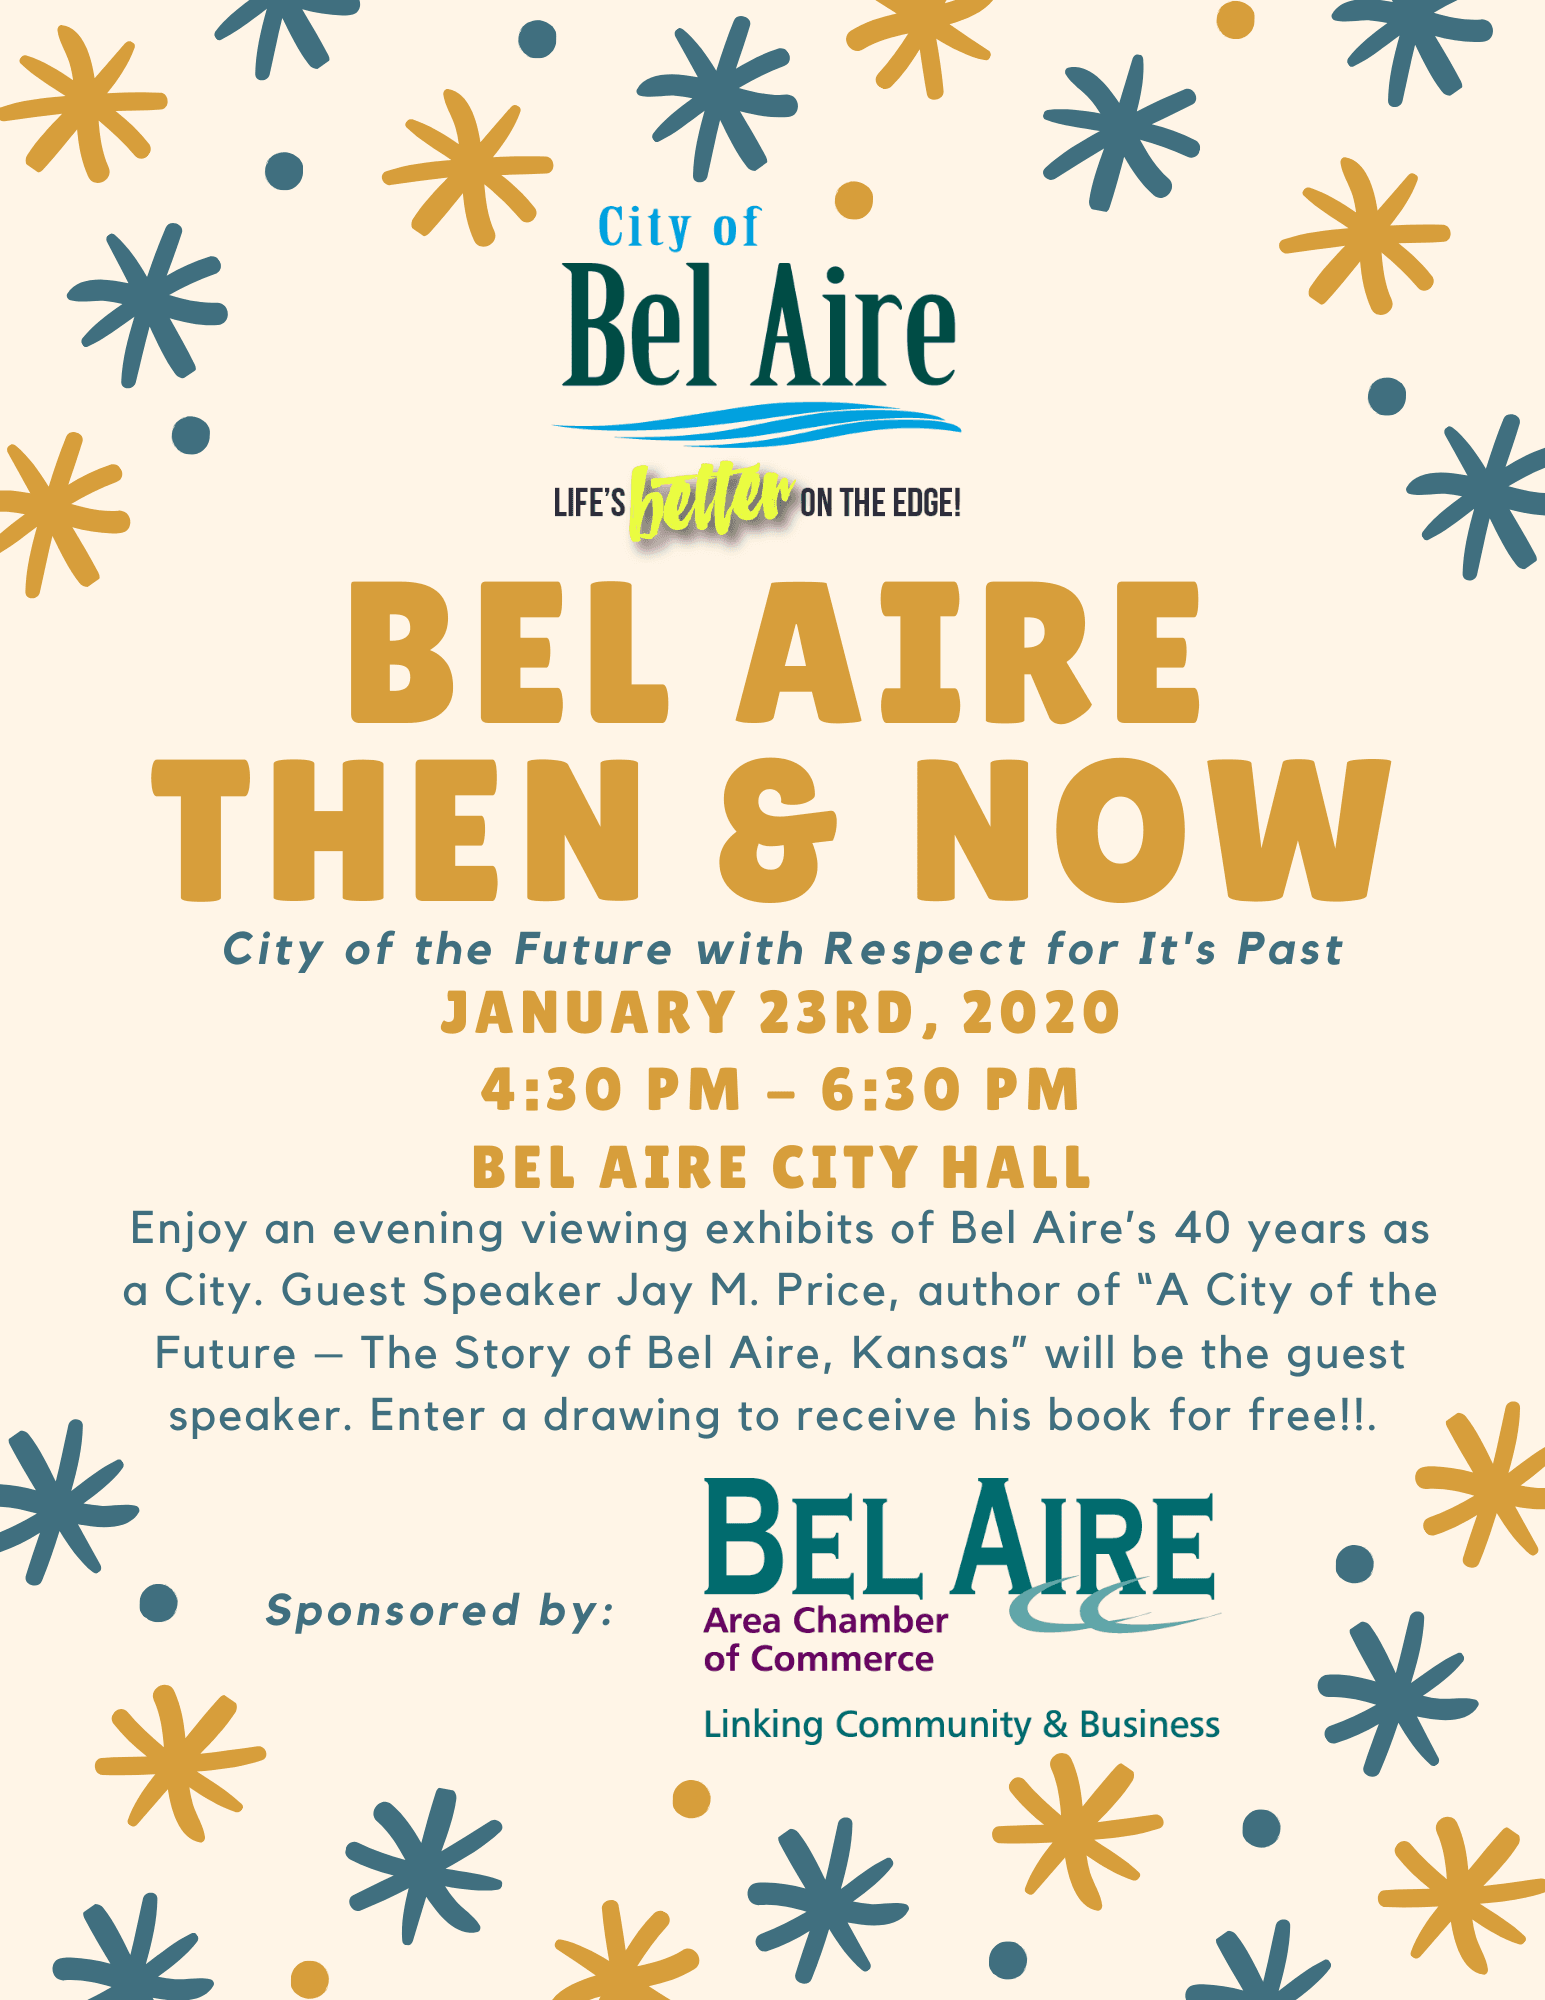 Bel Aire then and now (1)